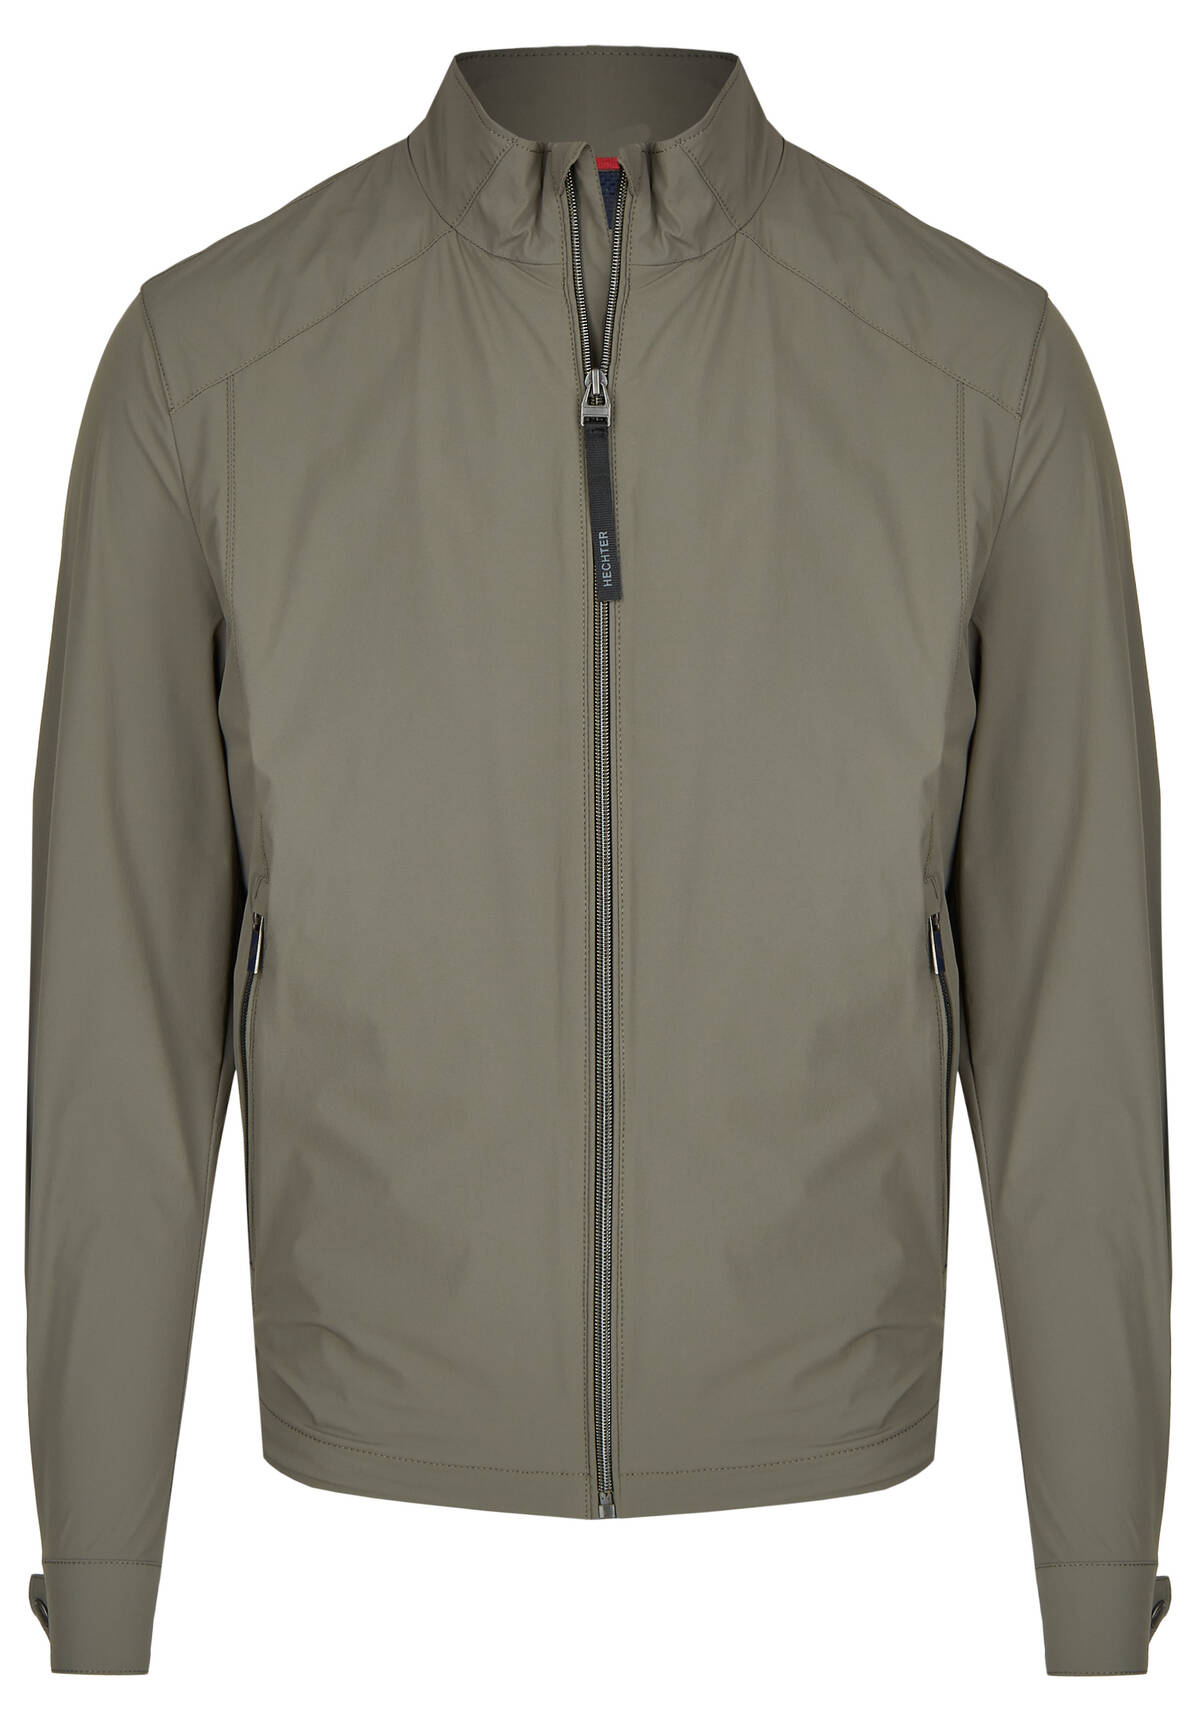 DH-XTENSION Blouson court /